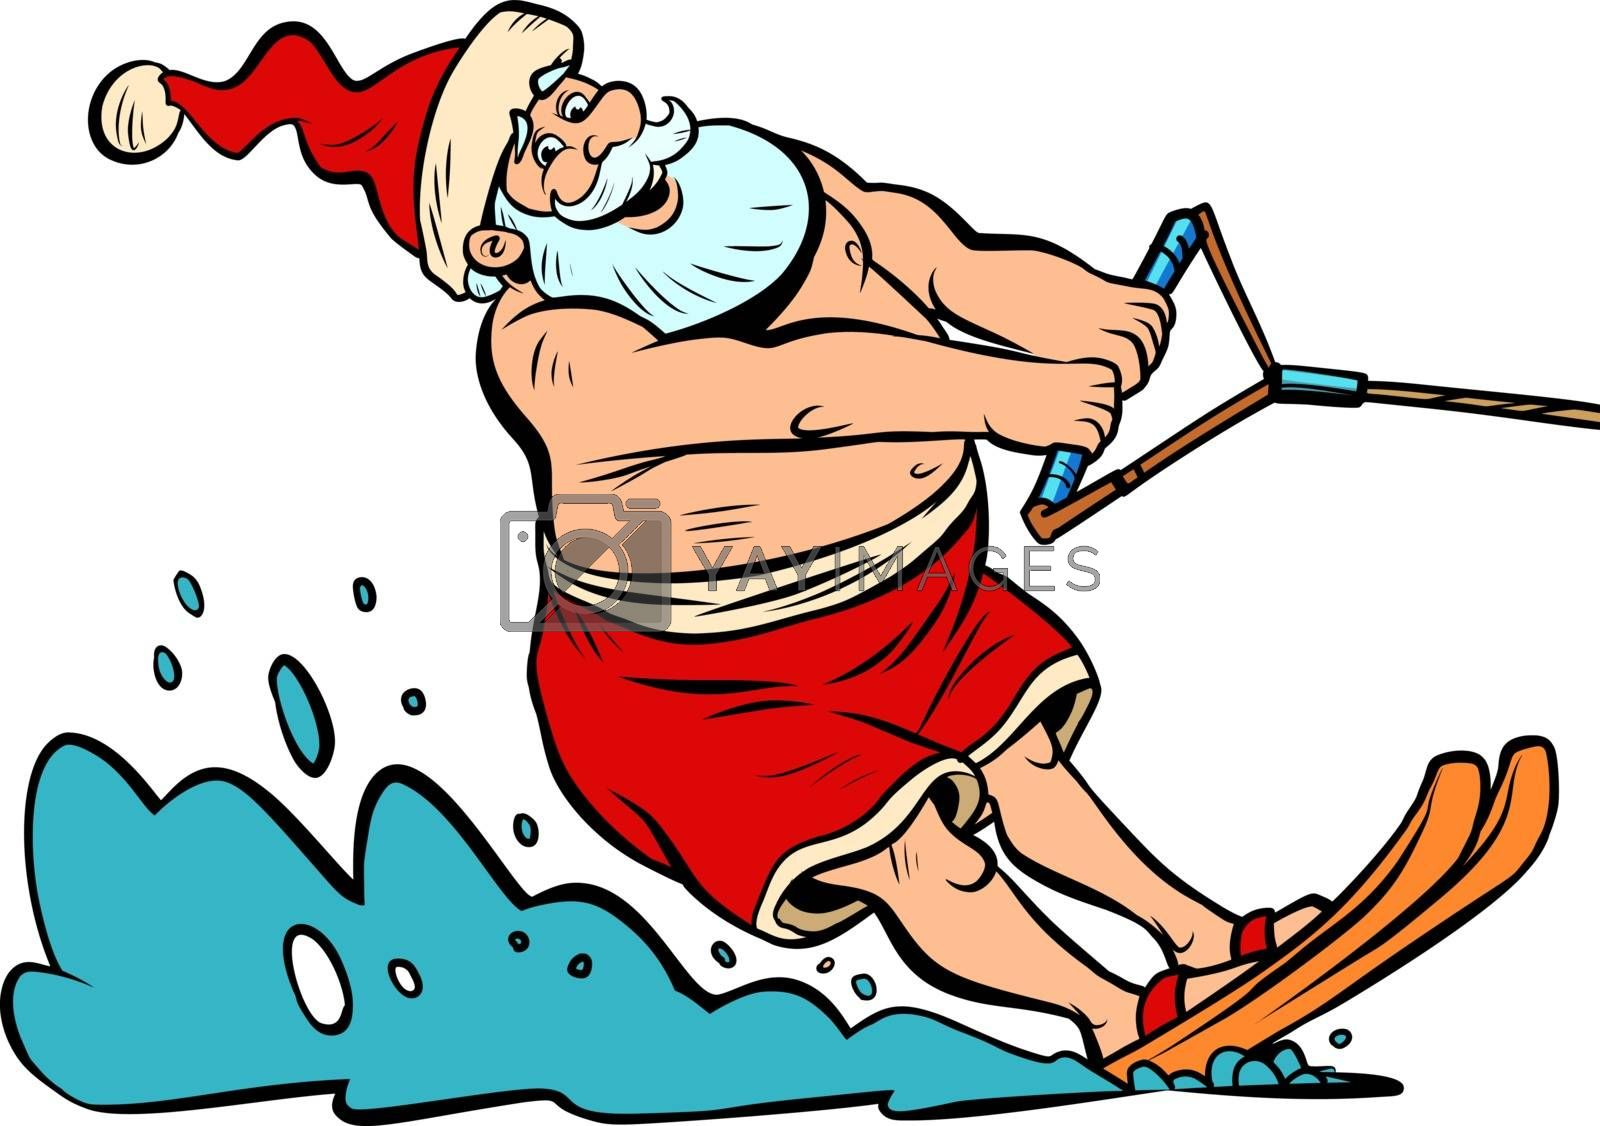 summer vacation water skiing. Santa Claus character Christmas new year. Comic cartoon pop art retro vector illustration drawing